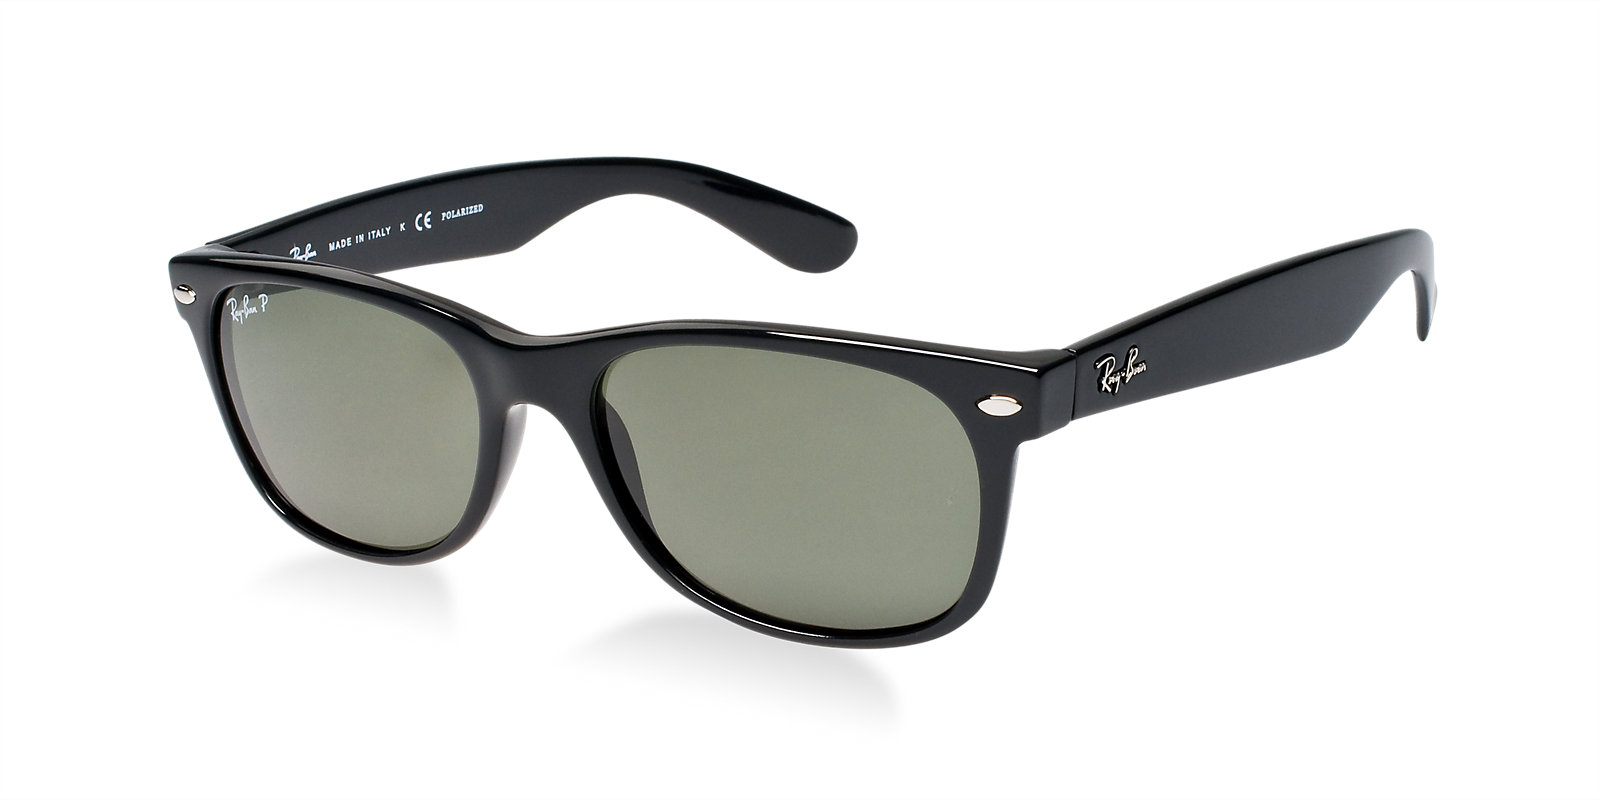 f844924ce10 Previous  Next. Previous  Next. RAY-BAN RB2132 901 58 BLACK POLARIZED NEW WAYFARER  SUNGLASSES